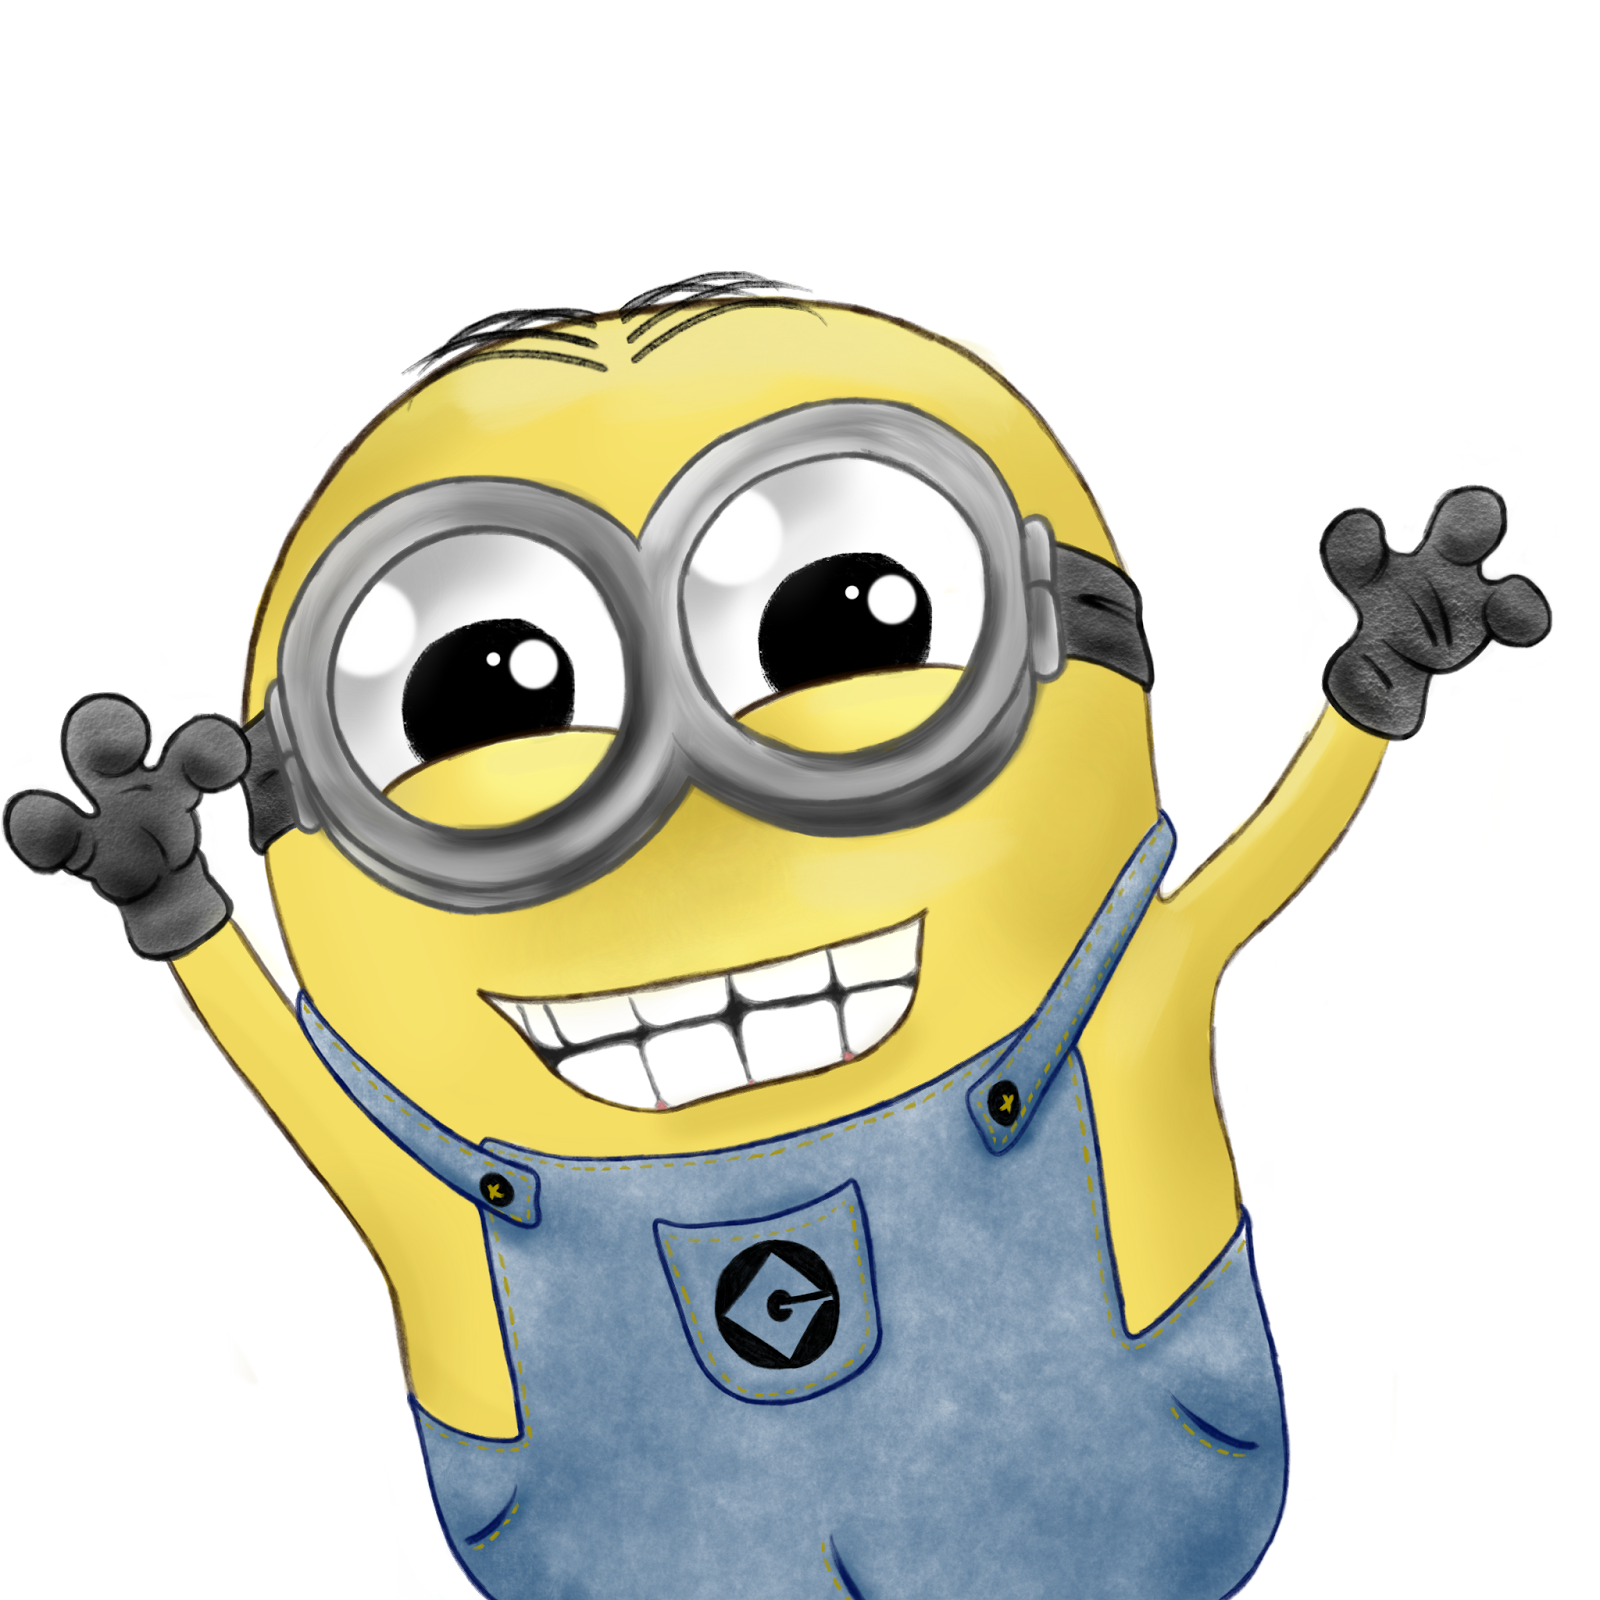 Niknadiem10 blogspot further Imagenes De Minions Vol5 in addition Free Gorgeous Printable Covers For Erin in addition 80s Theme Party What Do You Wear further Icona Pop We Got The World Video. on oscar flores teacher